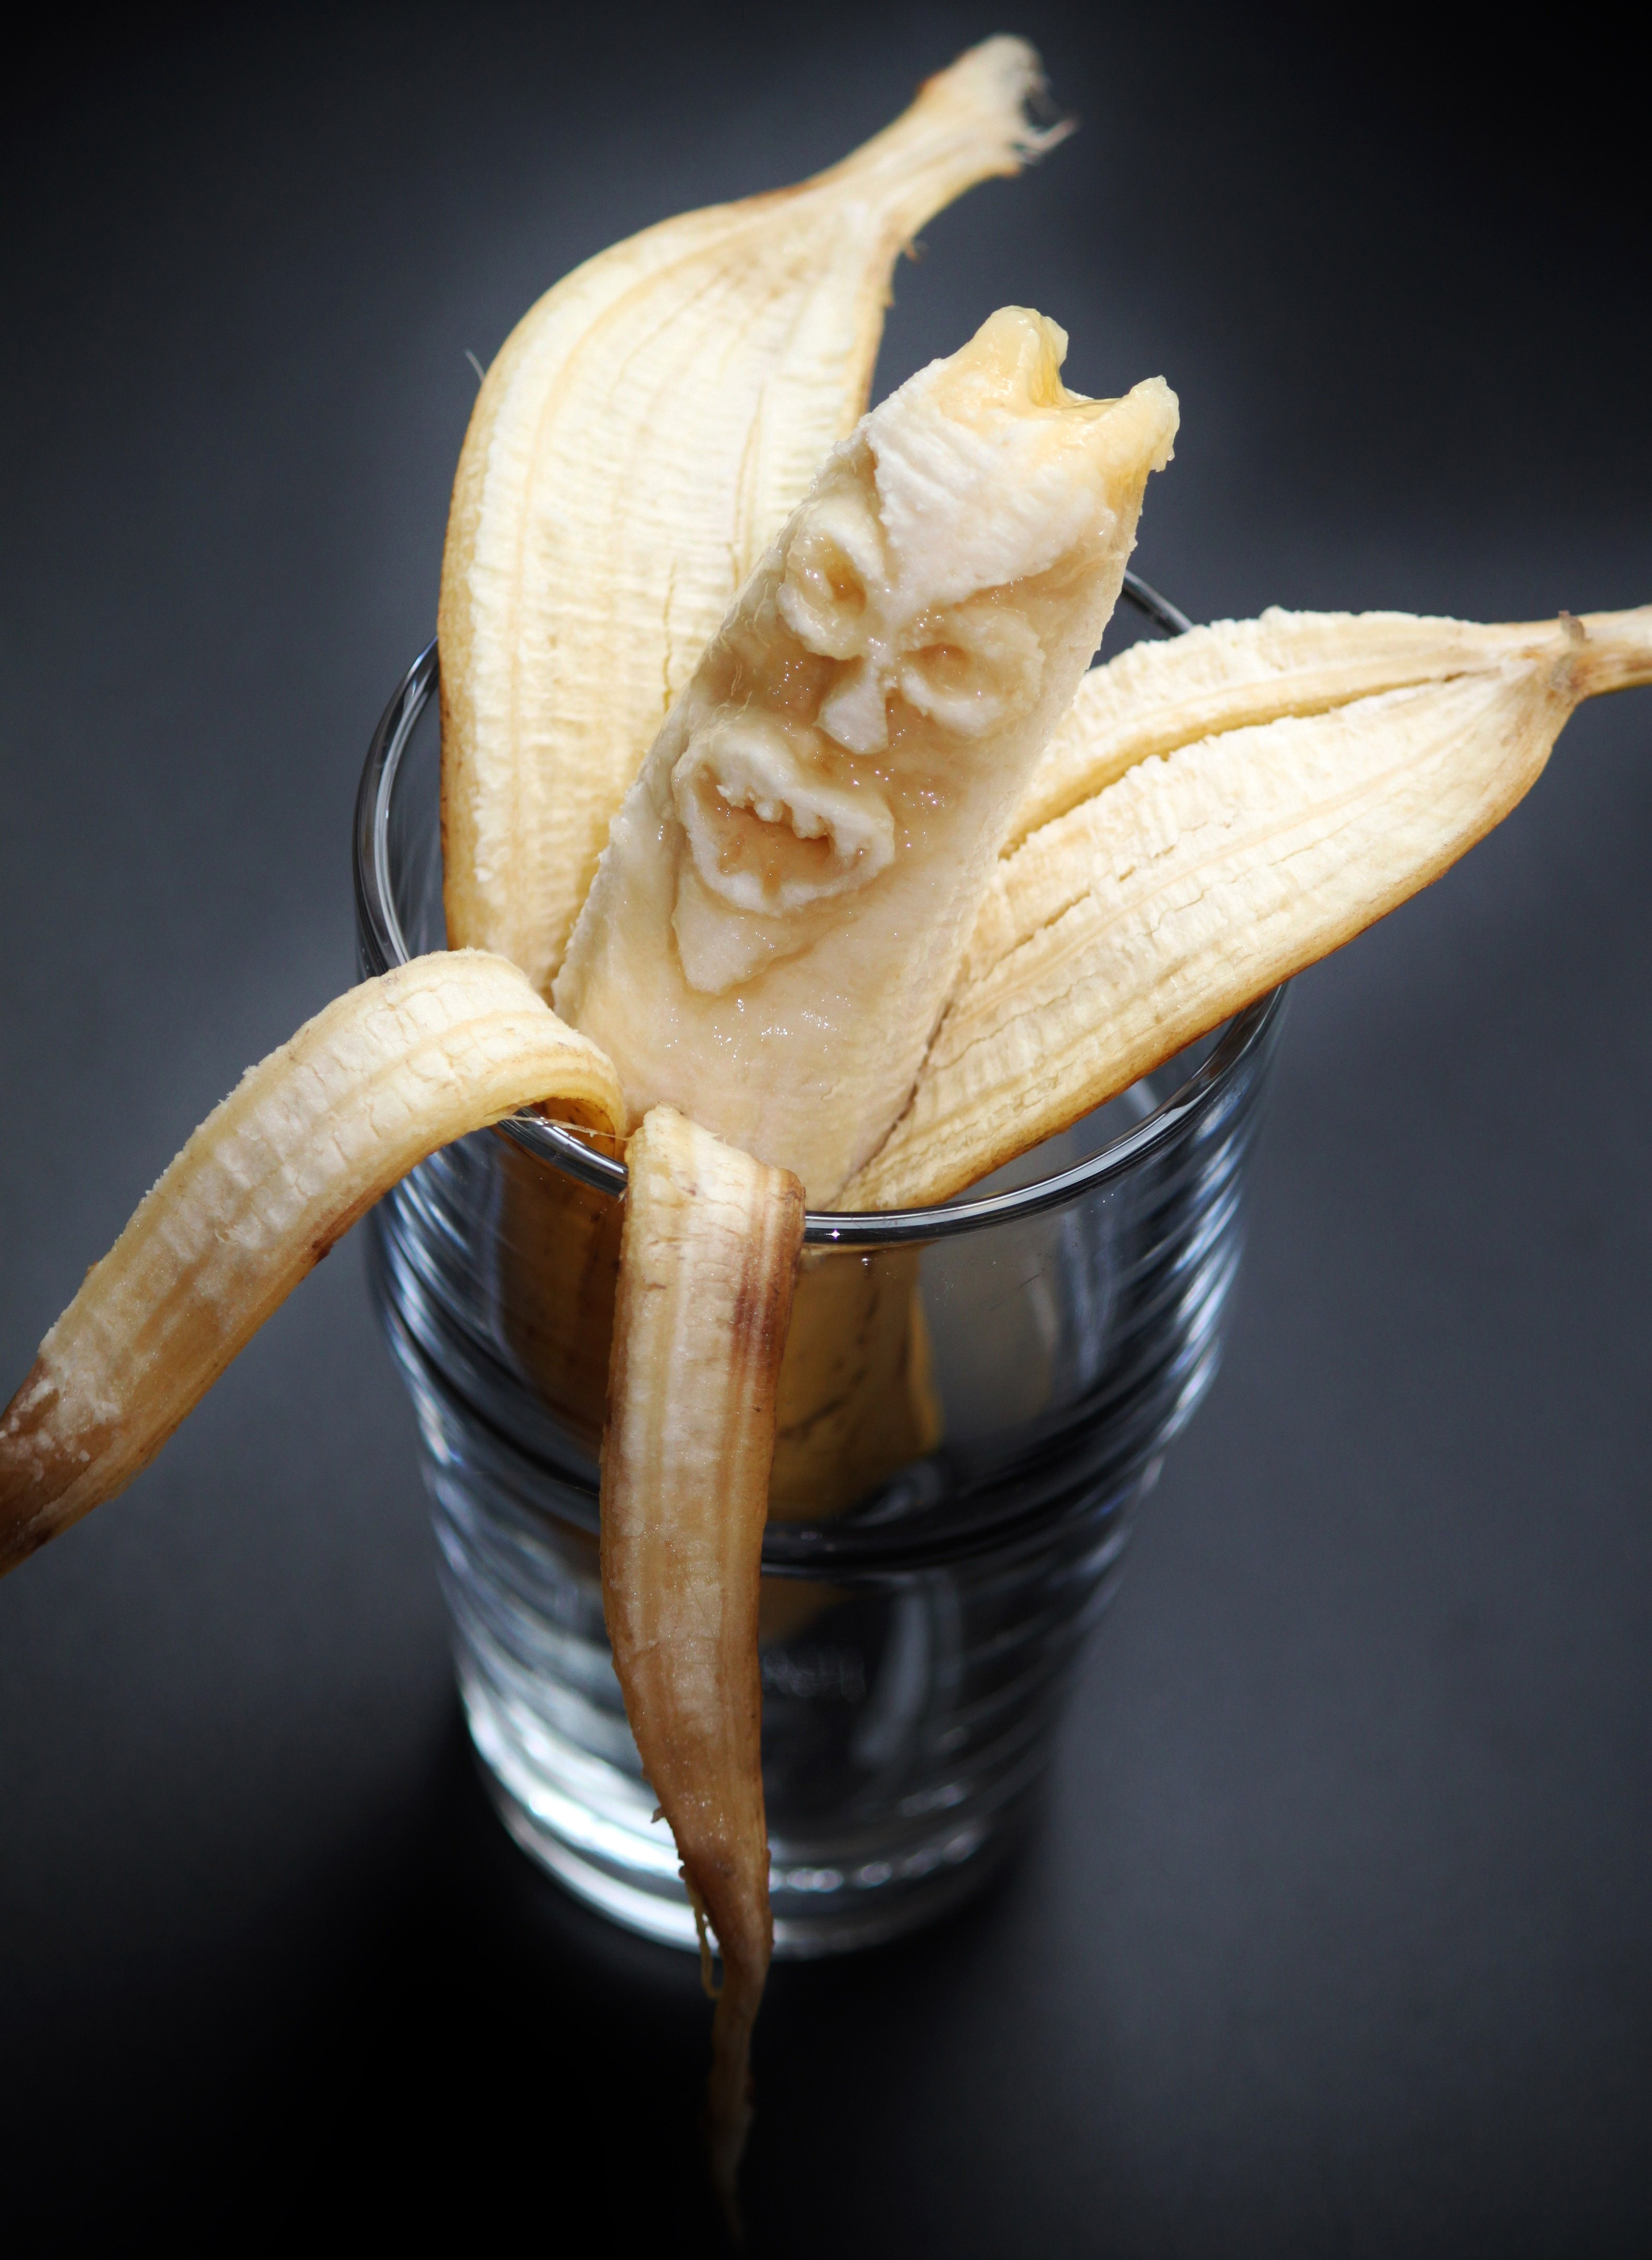 Banana Face Monster Image Free Stock Photo Public